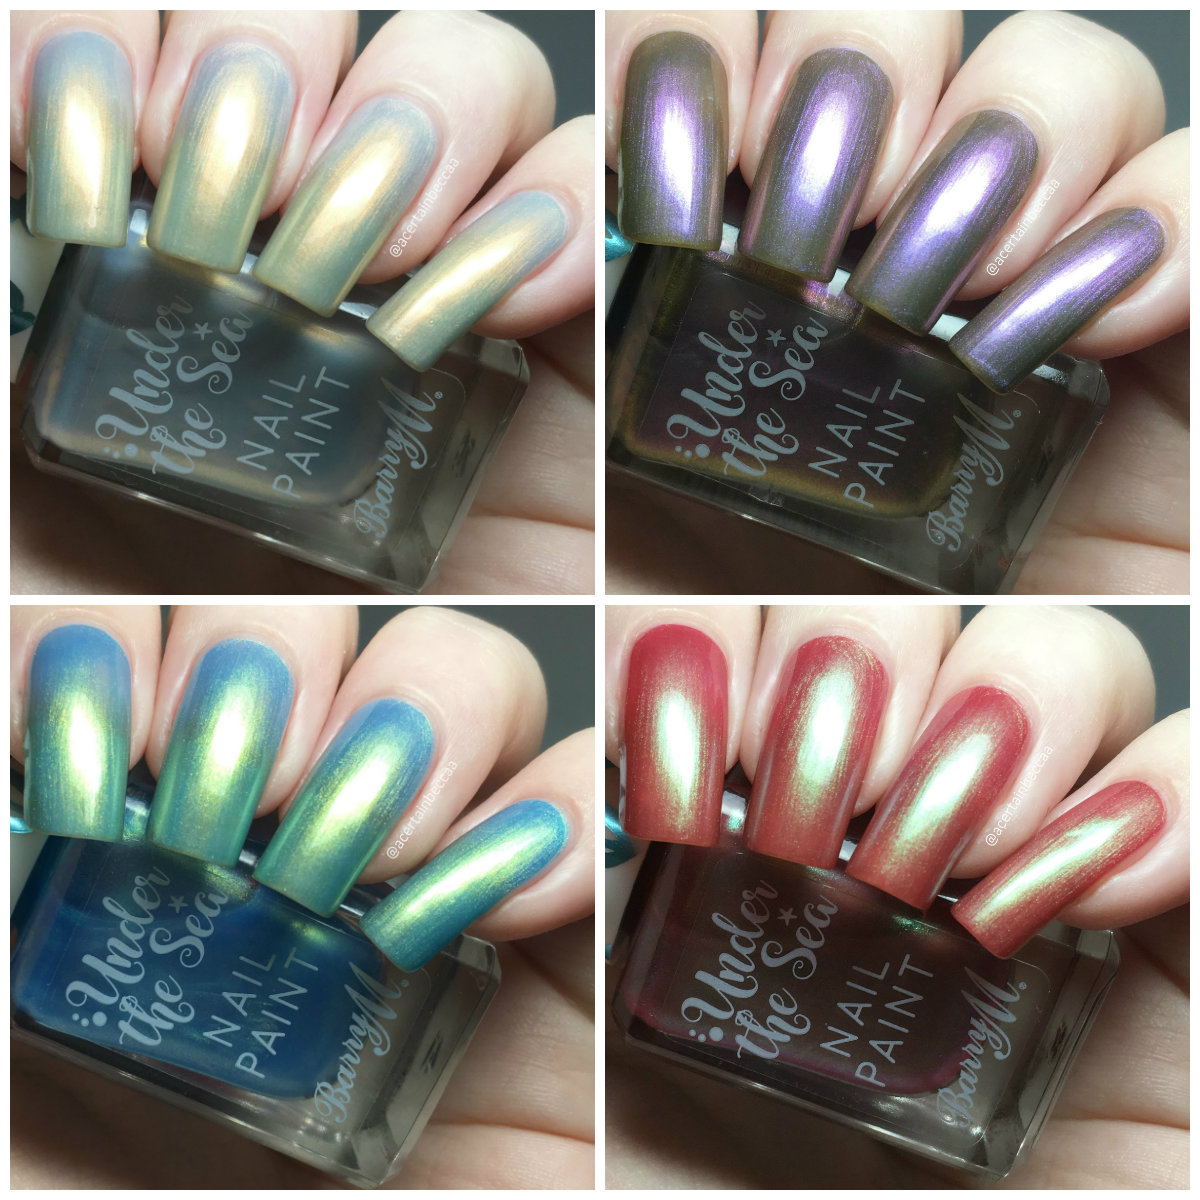 Finger Nail Paint: A Certain Becca Nails: Barry M Under The Sea Nail Paints